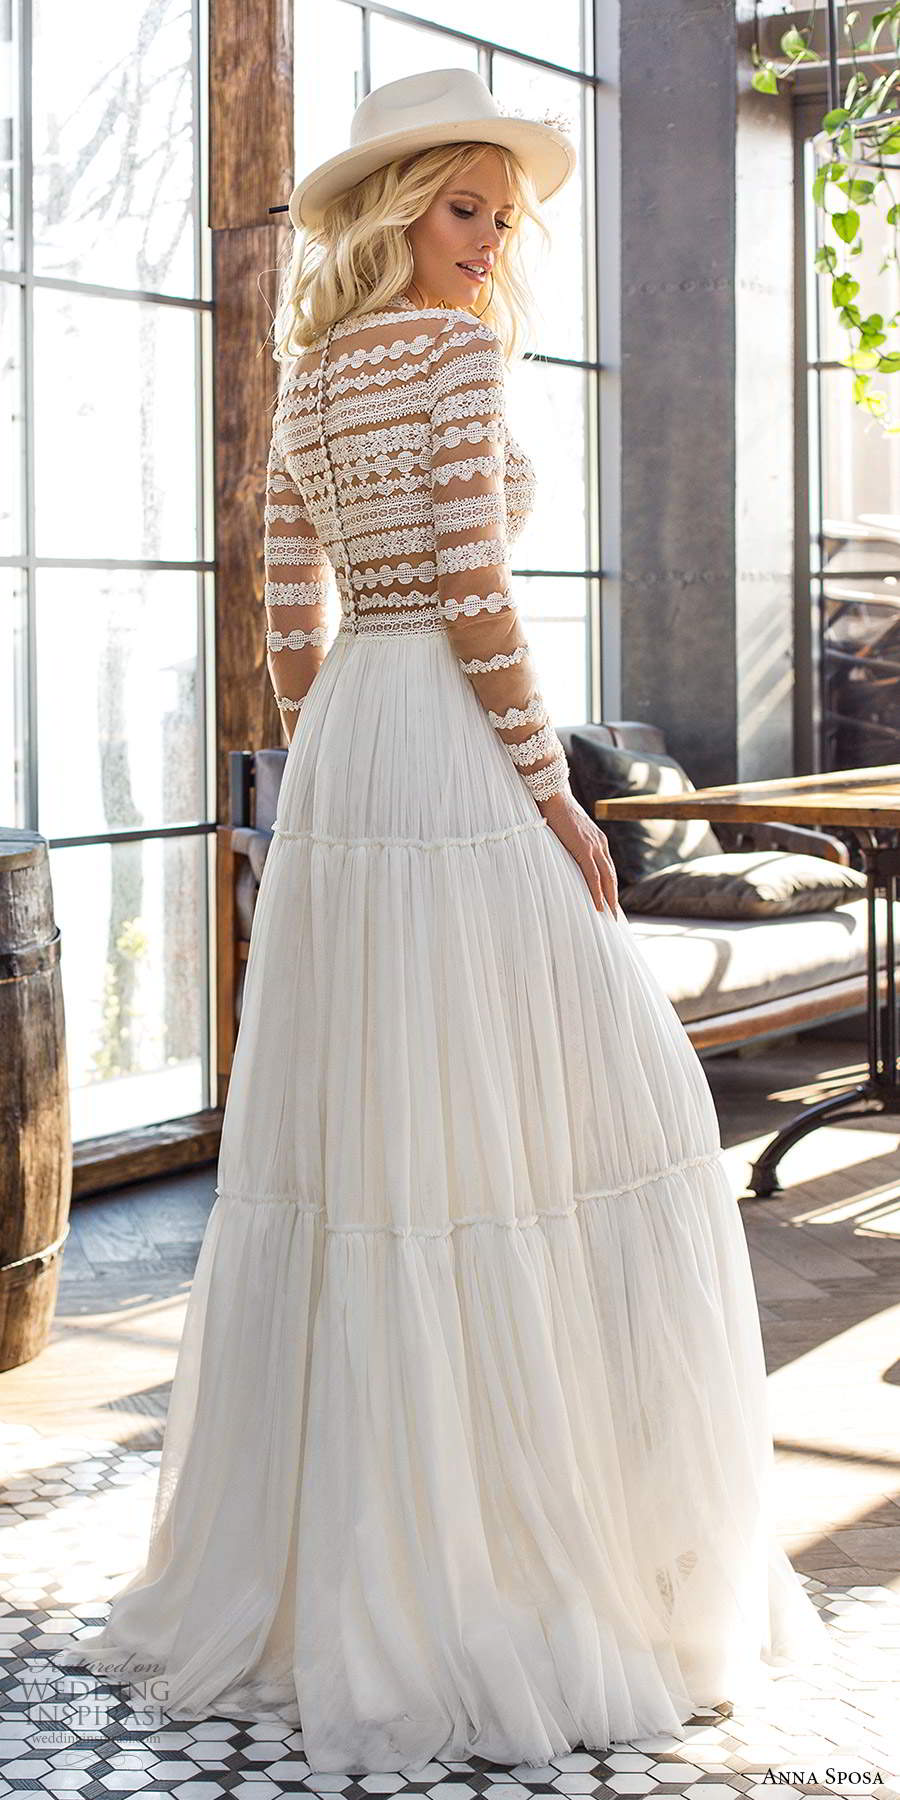 anna sposa 2021 boho bridal sheer long sleeves high neckline embellished lace bodice boho a line ball gown wedding dress tiered skirt sweep train (12) bv